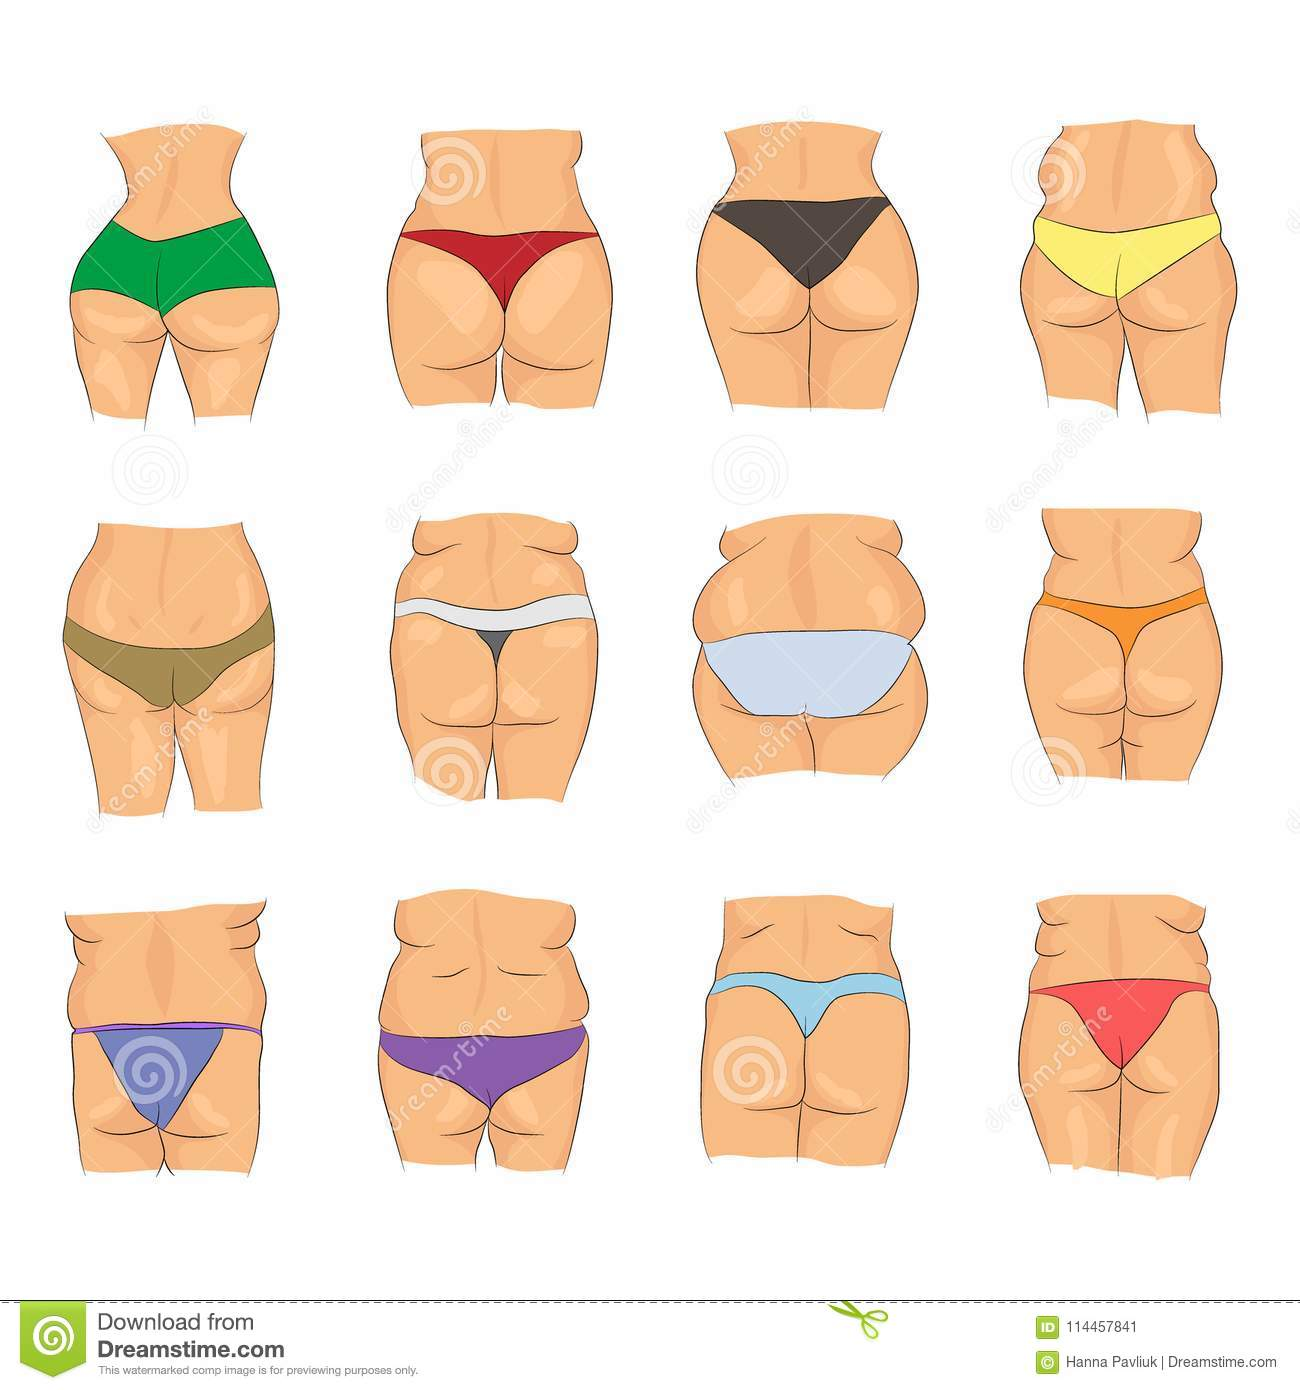 Cartoon collection of various woman butts in different colorful panties  isolated on white background d4e3343d0